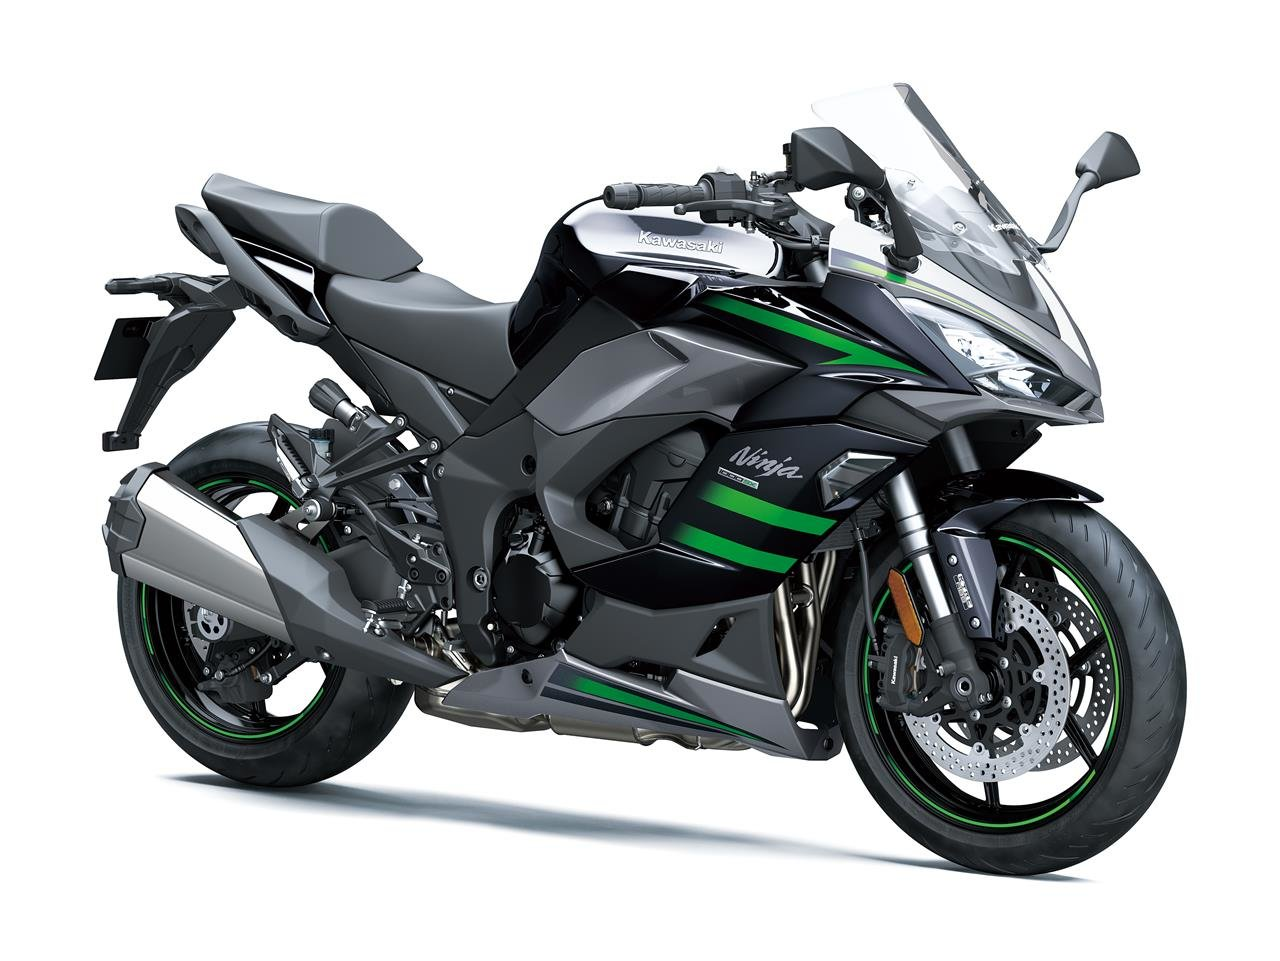 New 2020 Kawasaki Ninja 1000 SX SE **FREE DELIVERY** For Sale (picture 1 of 6)